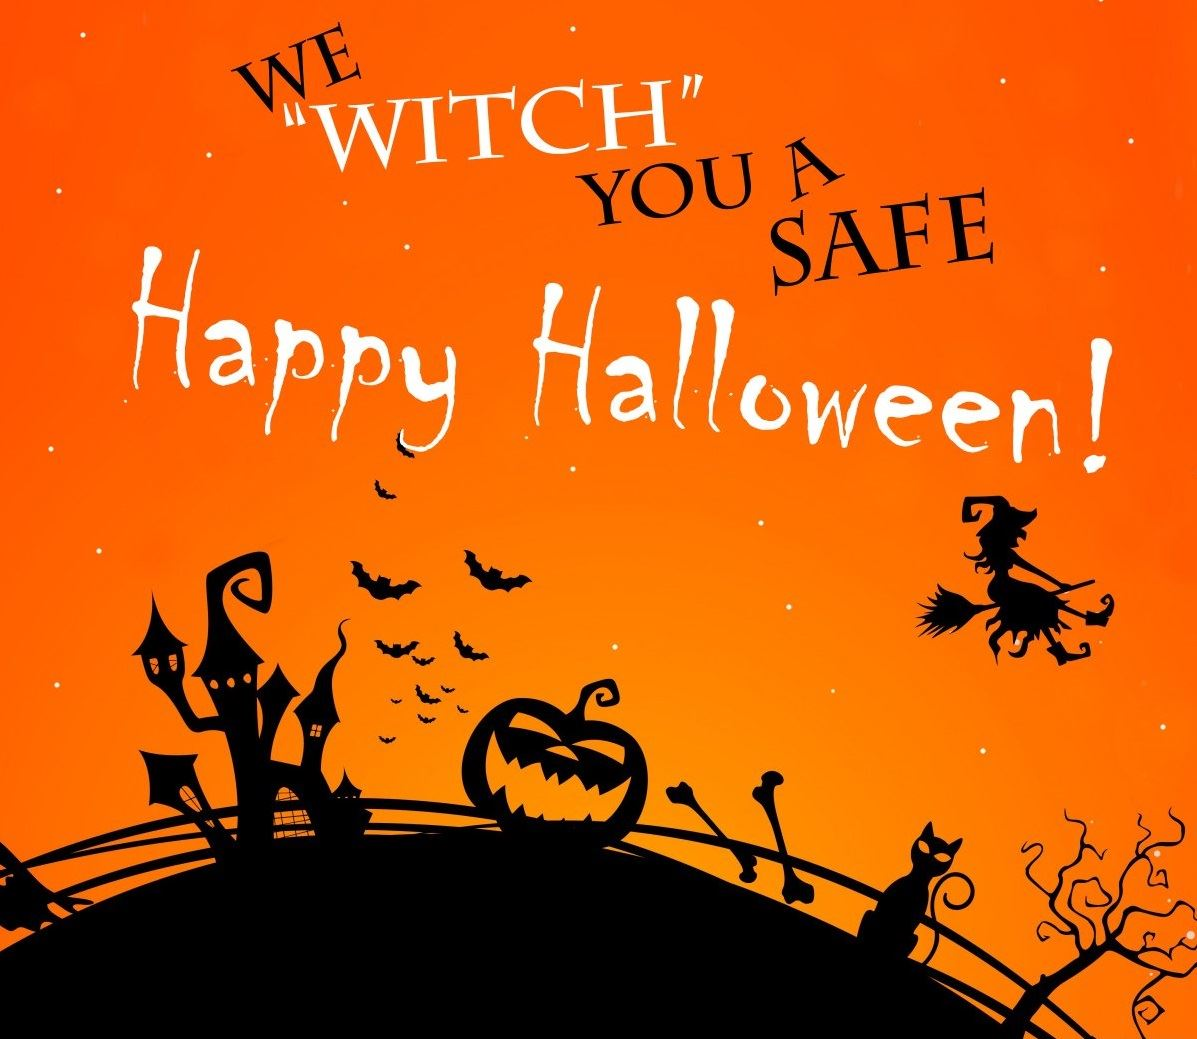 we witch you a safe halloween